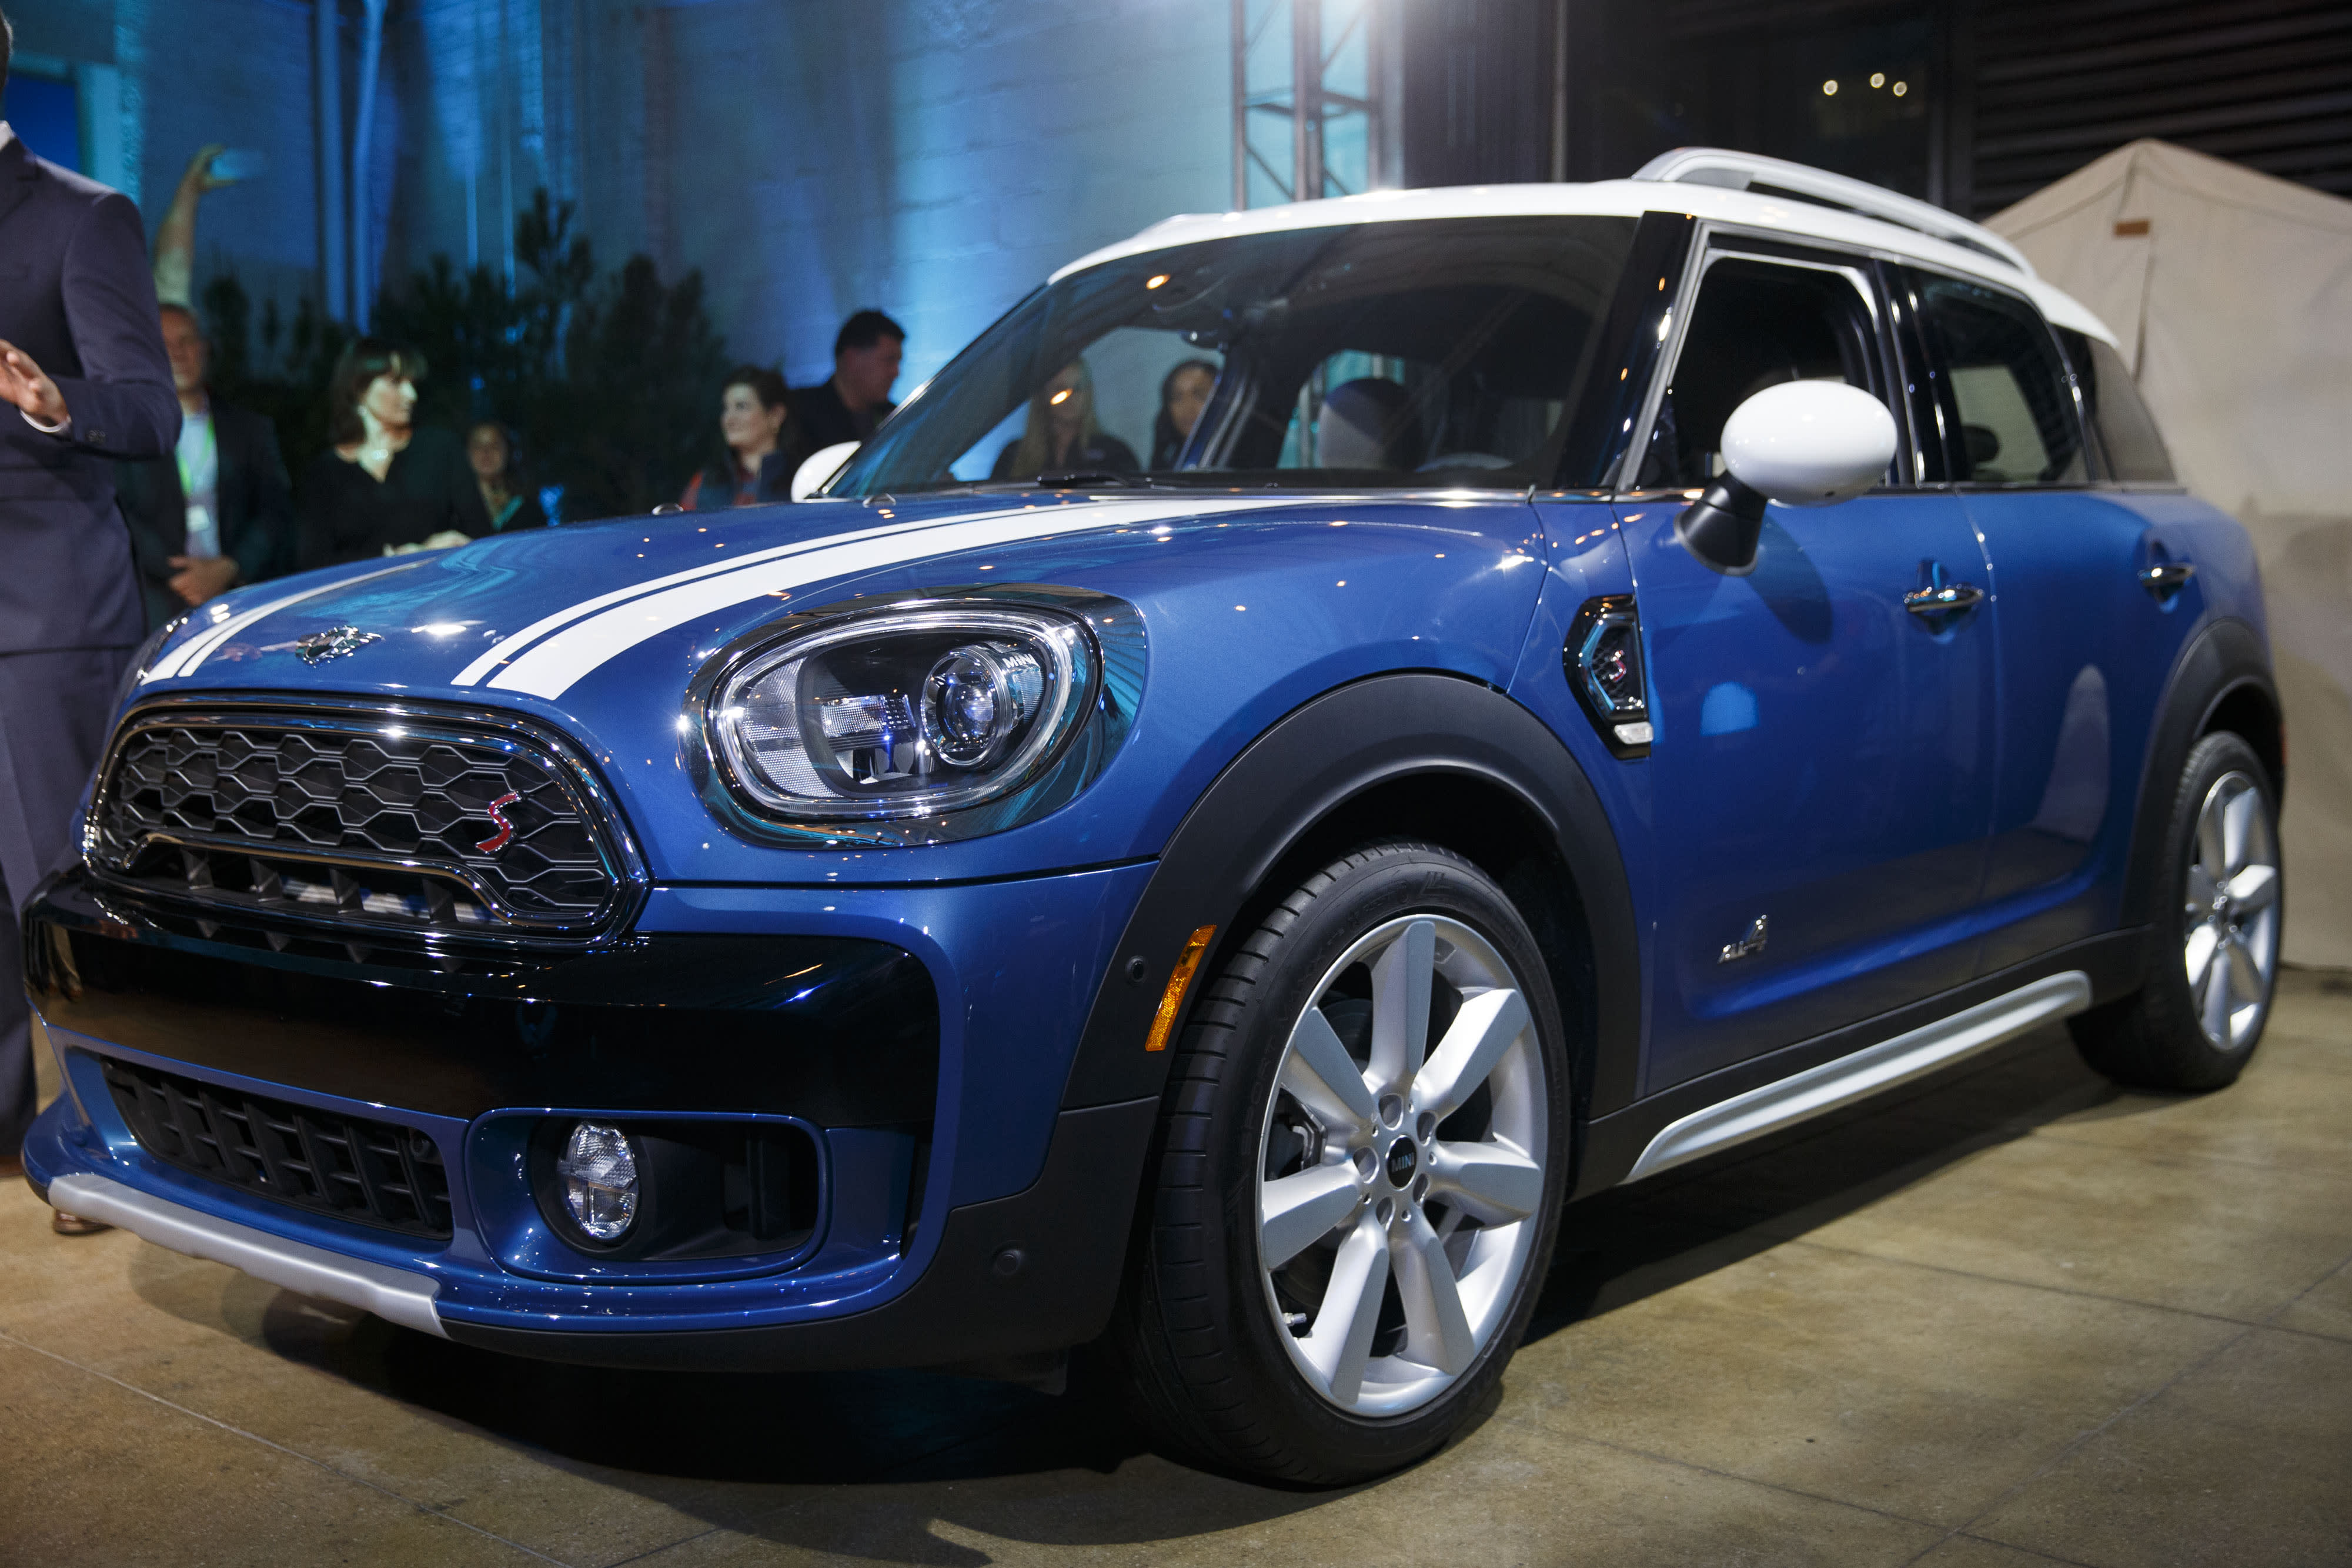 BMW's Mini is fighting to stay alive in SUV-obsessed America